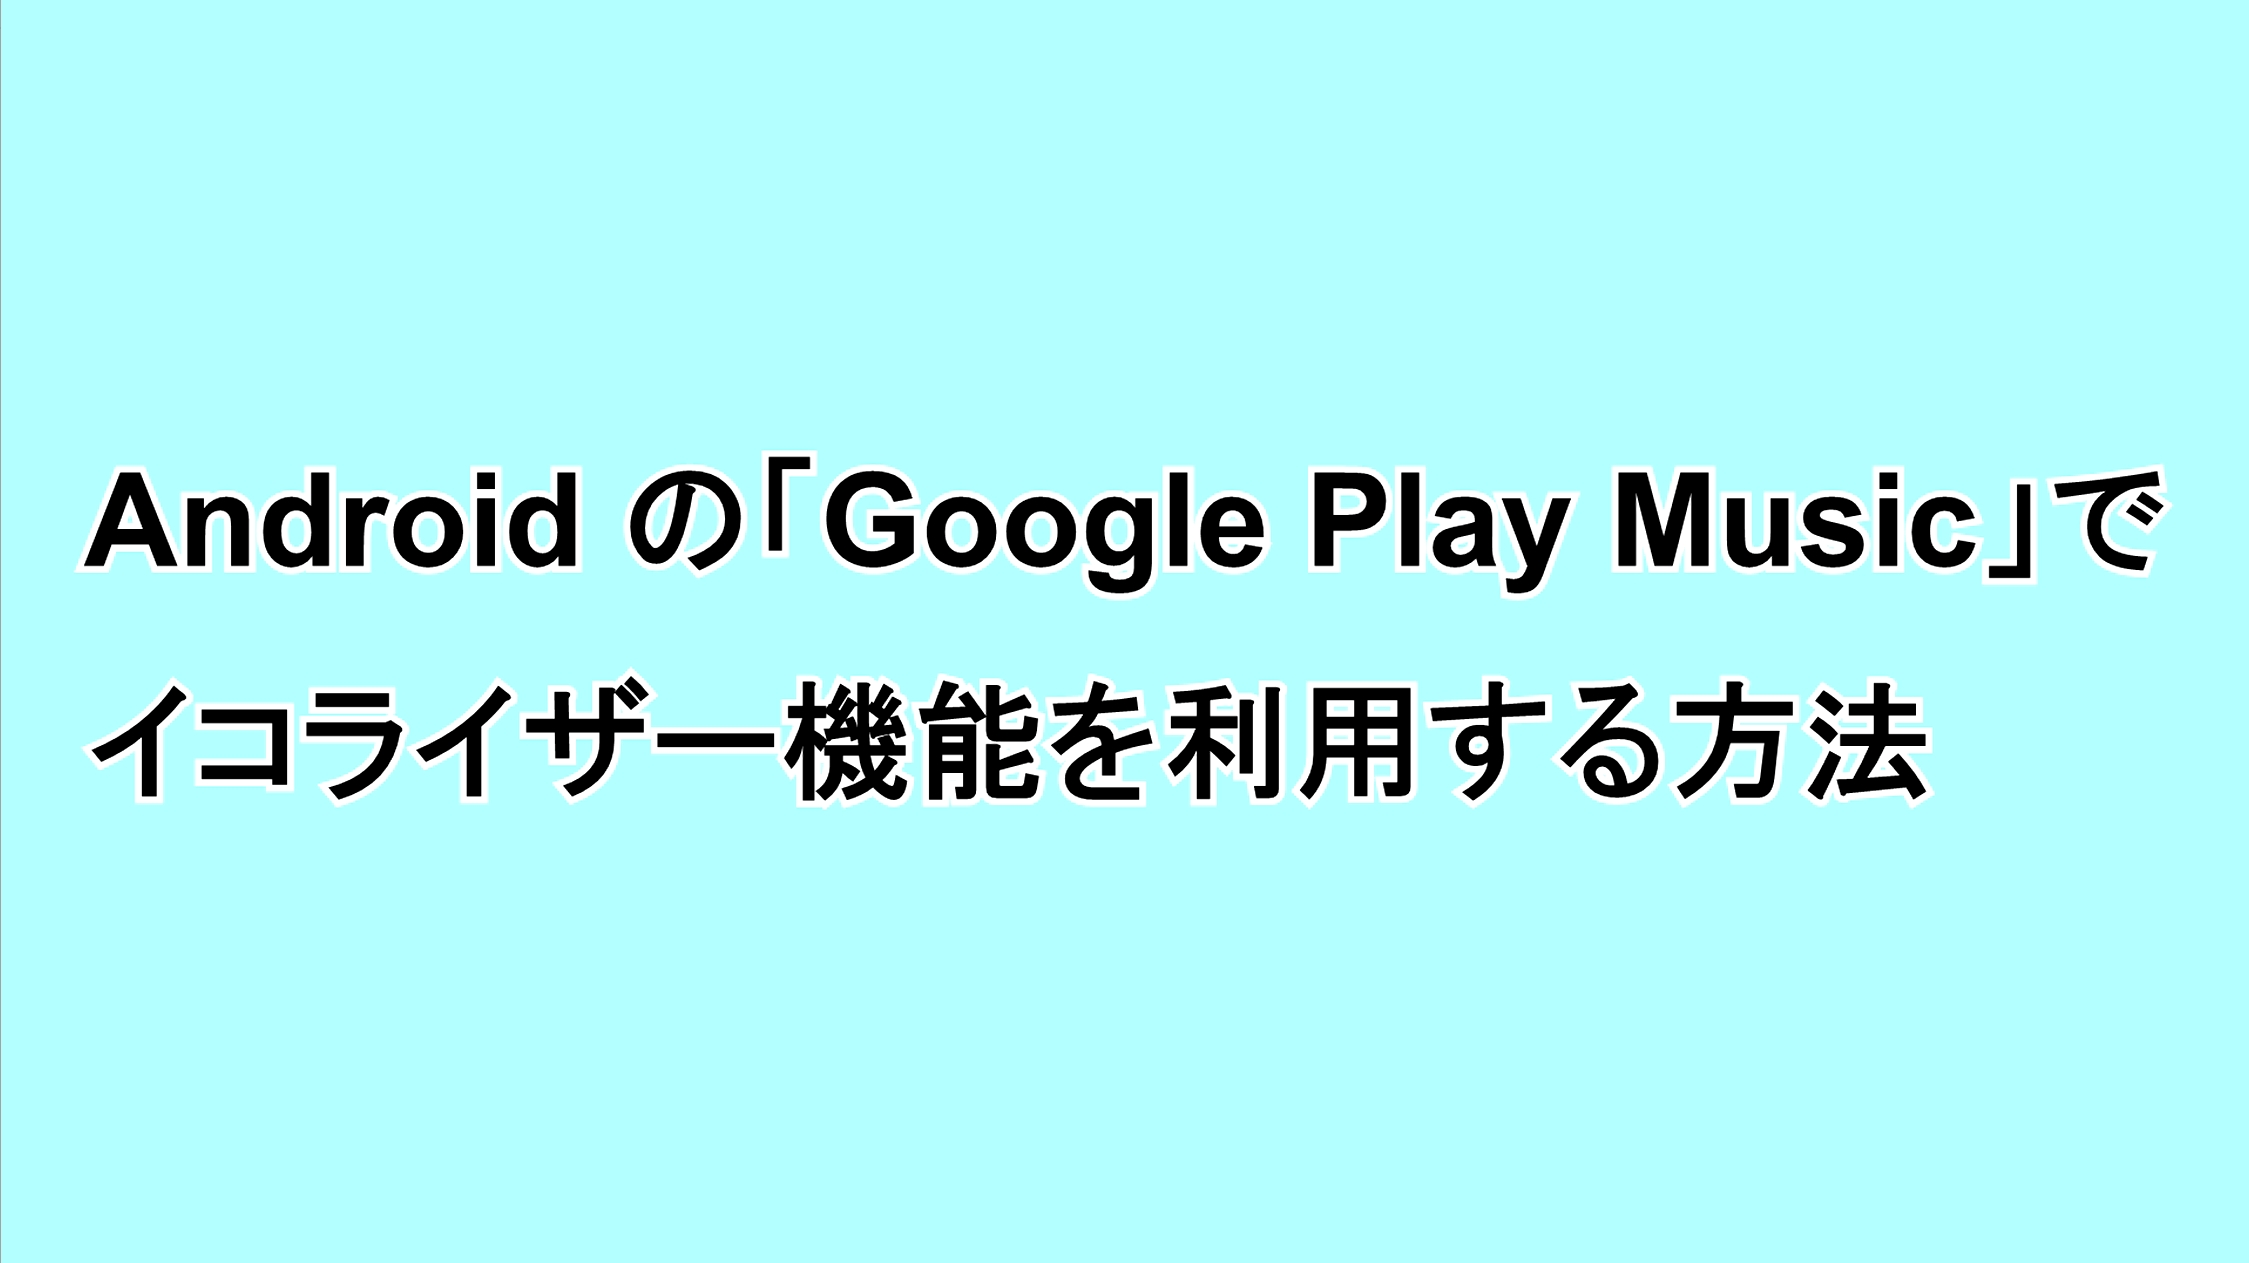 Androidの「Google Play Music」でイコライザー機能を利用する方法